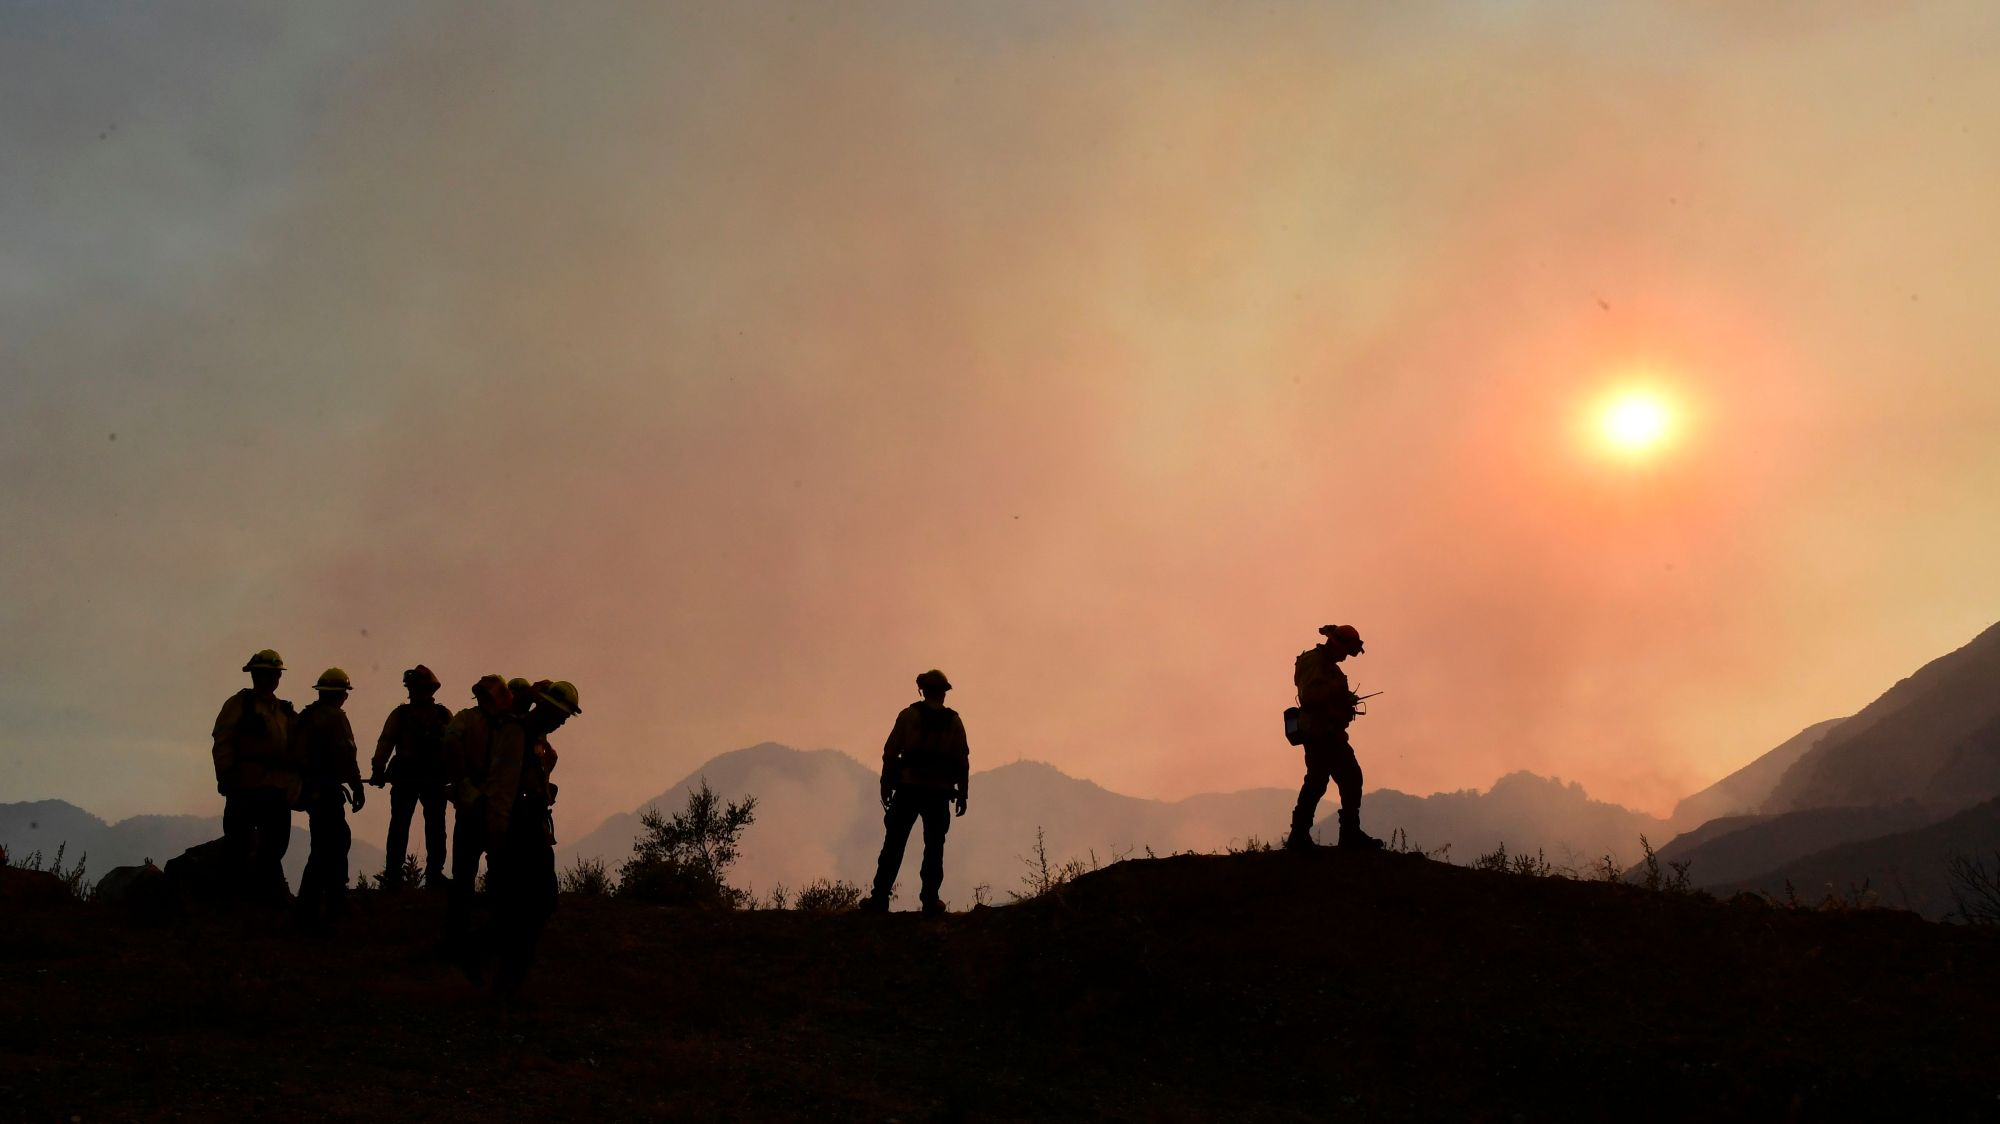 Firefighters position themselves on a ridge overlooking smoldering fires from the Bobcat Fire in a valley below in the Angeles National Forest on Sept. 23, 2020 in Los Angeles. (FREDERIC J. BROWN/AFP via Getty Images)